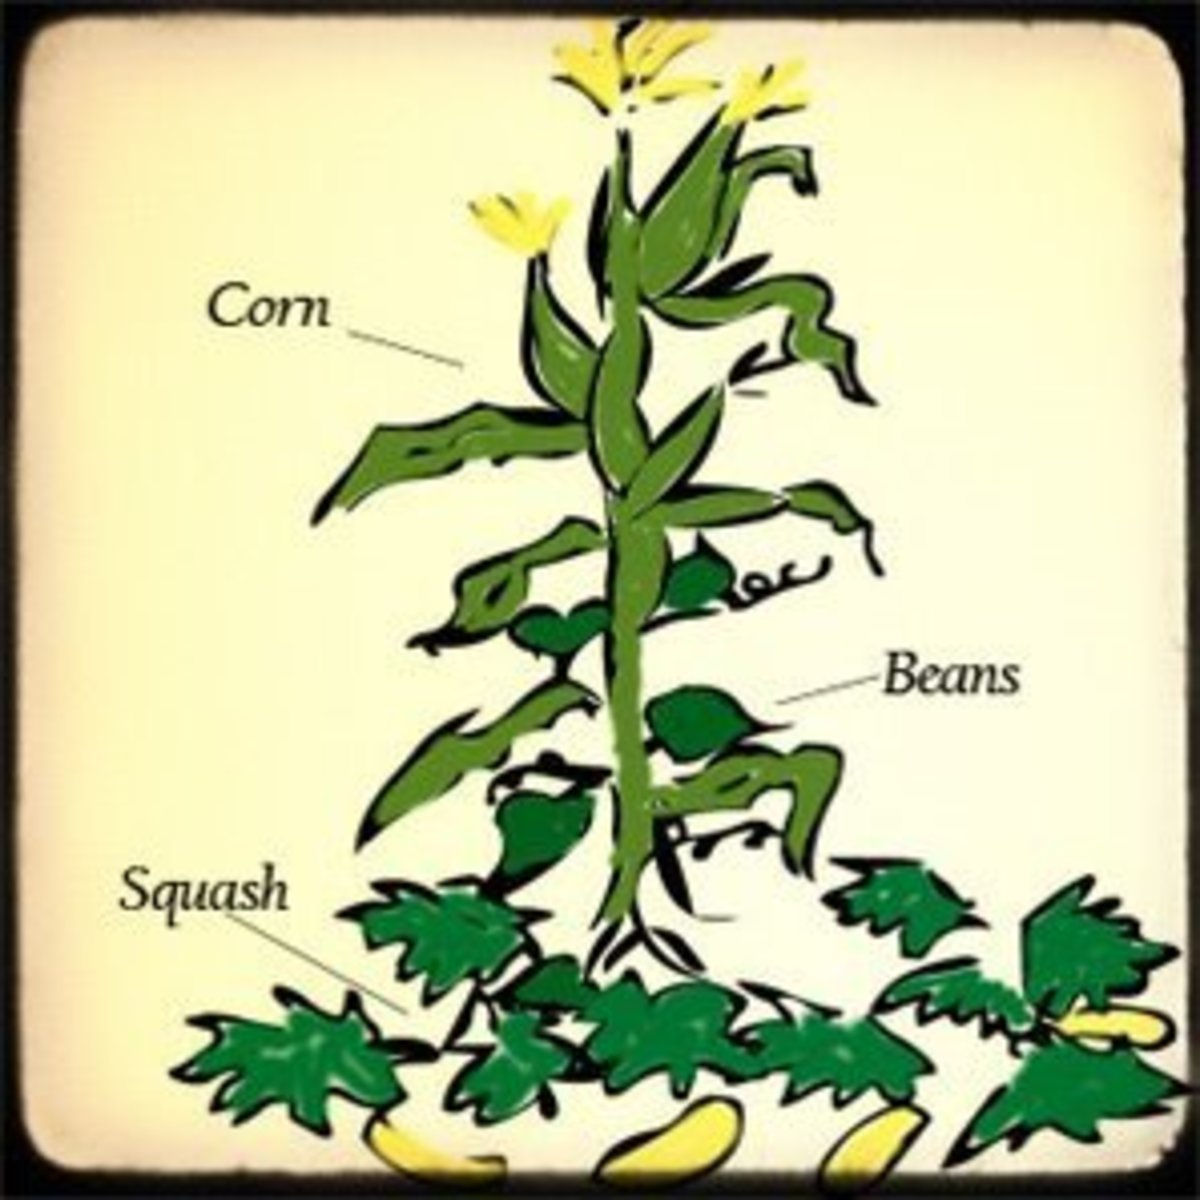 Corn, Beans, and Squash: The Three Sisters